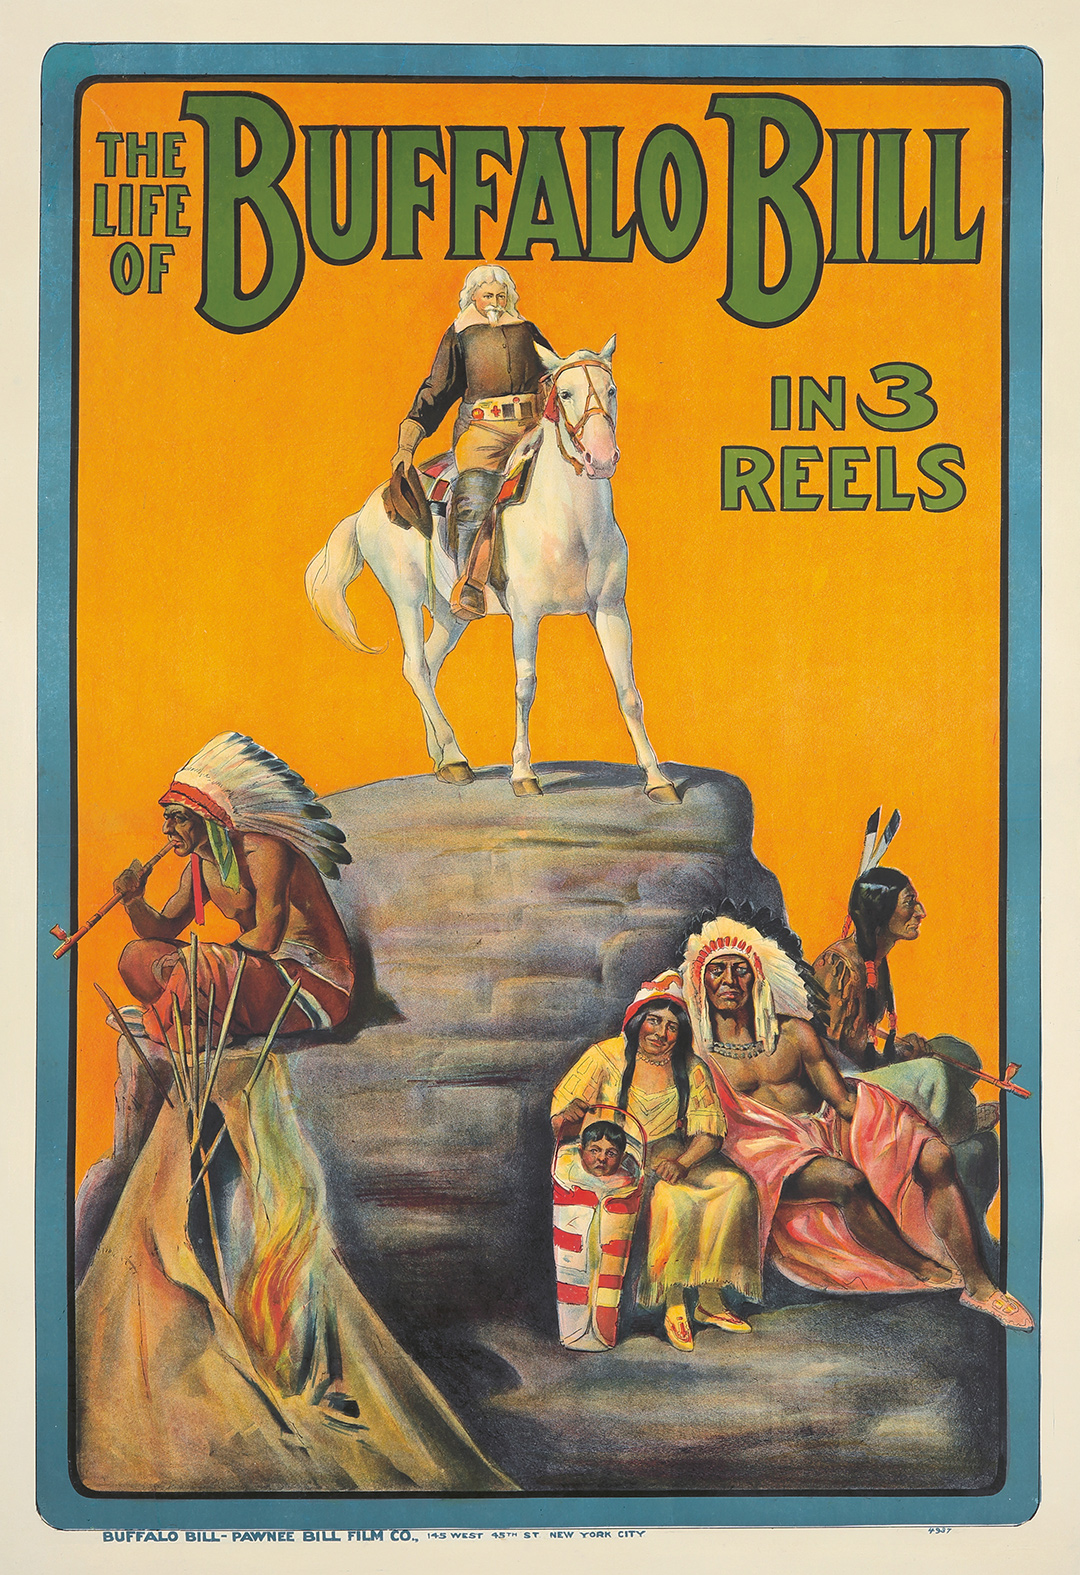 412. The Life Of Buffalo Bill In 3 Reels. 1912. ($4,320)